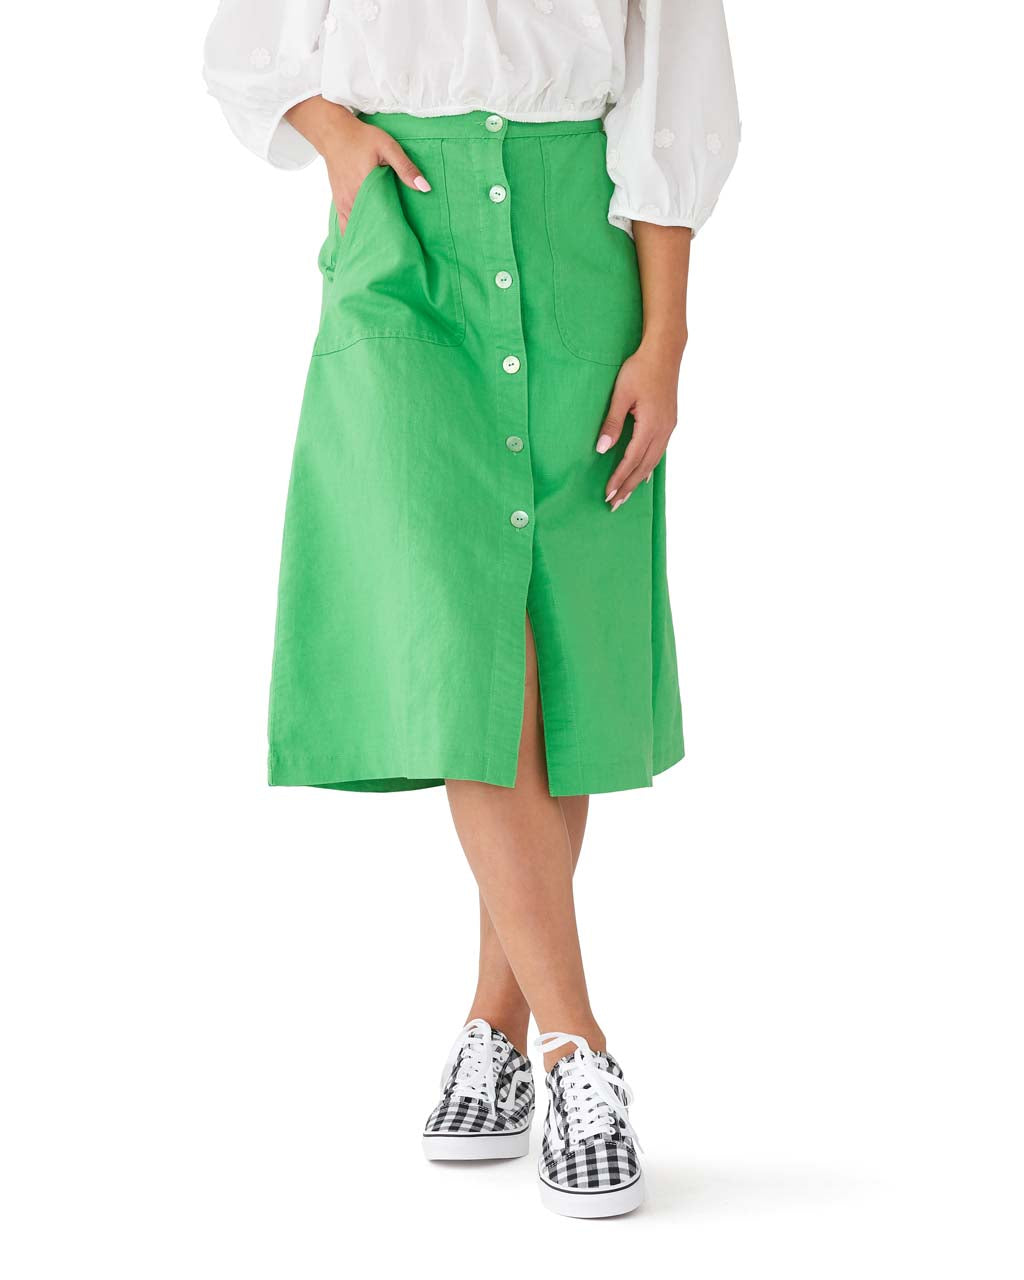 bd506eff5c Rosemary Button Skirt - Kermit Green by rachel antonoff - skirt - ban.do